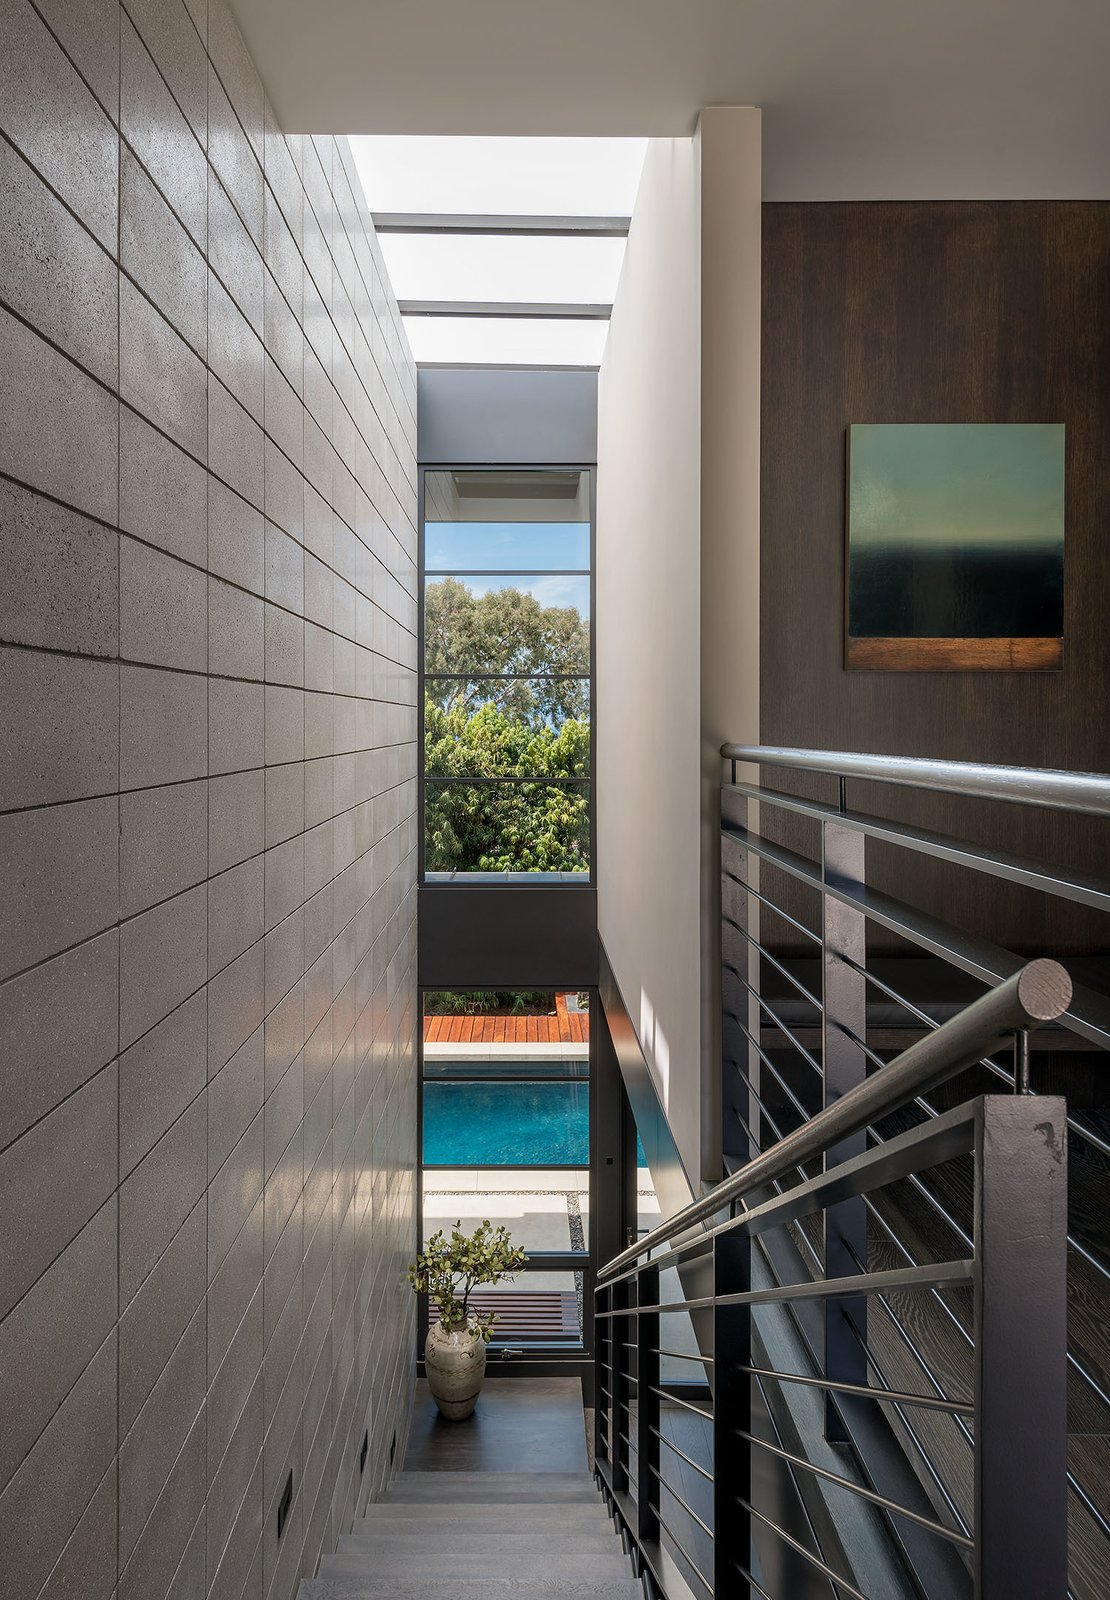 Staircase and Metal Railing Stairs lead down to the pool.  Photo 22 of 23 in A Southern California Midcentury Gets a Serene, Japanese-Inspired Treatment